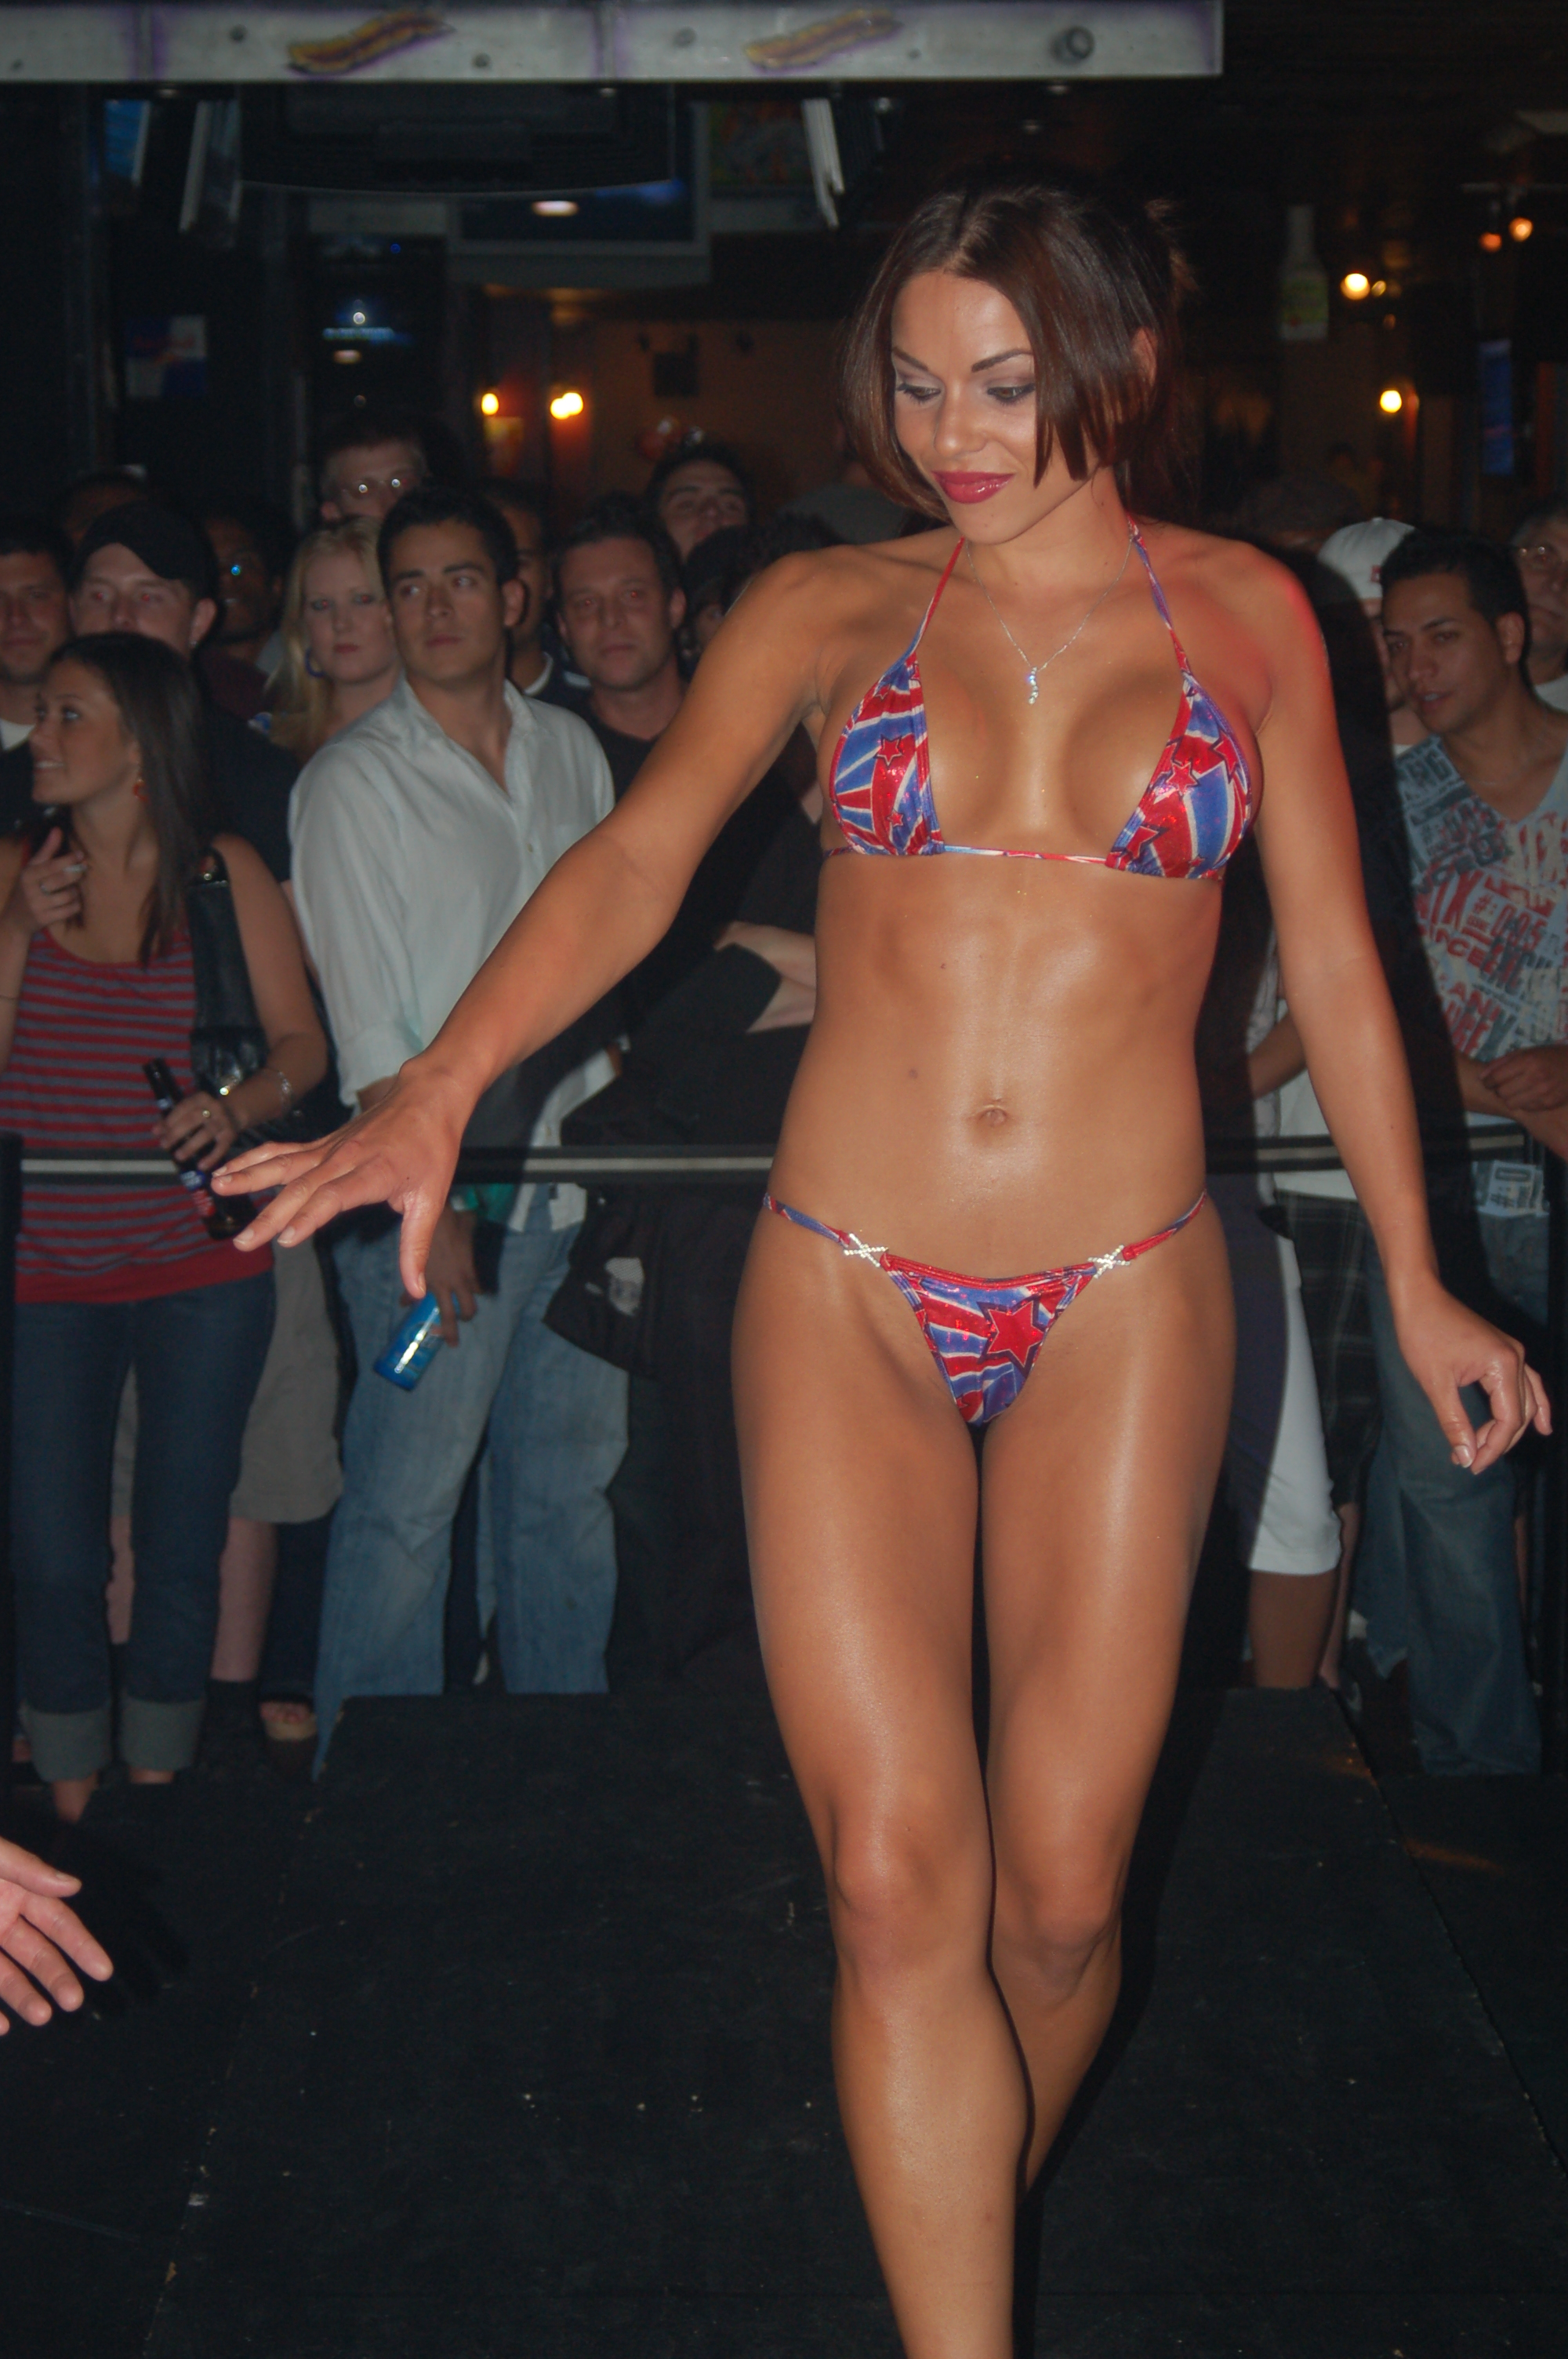 Description Bridges Bikini Contest 6.jpg